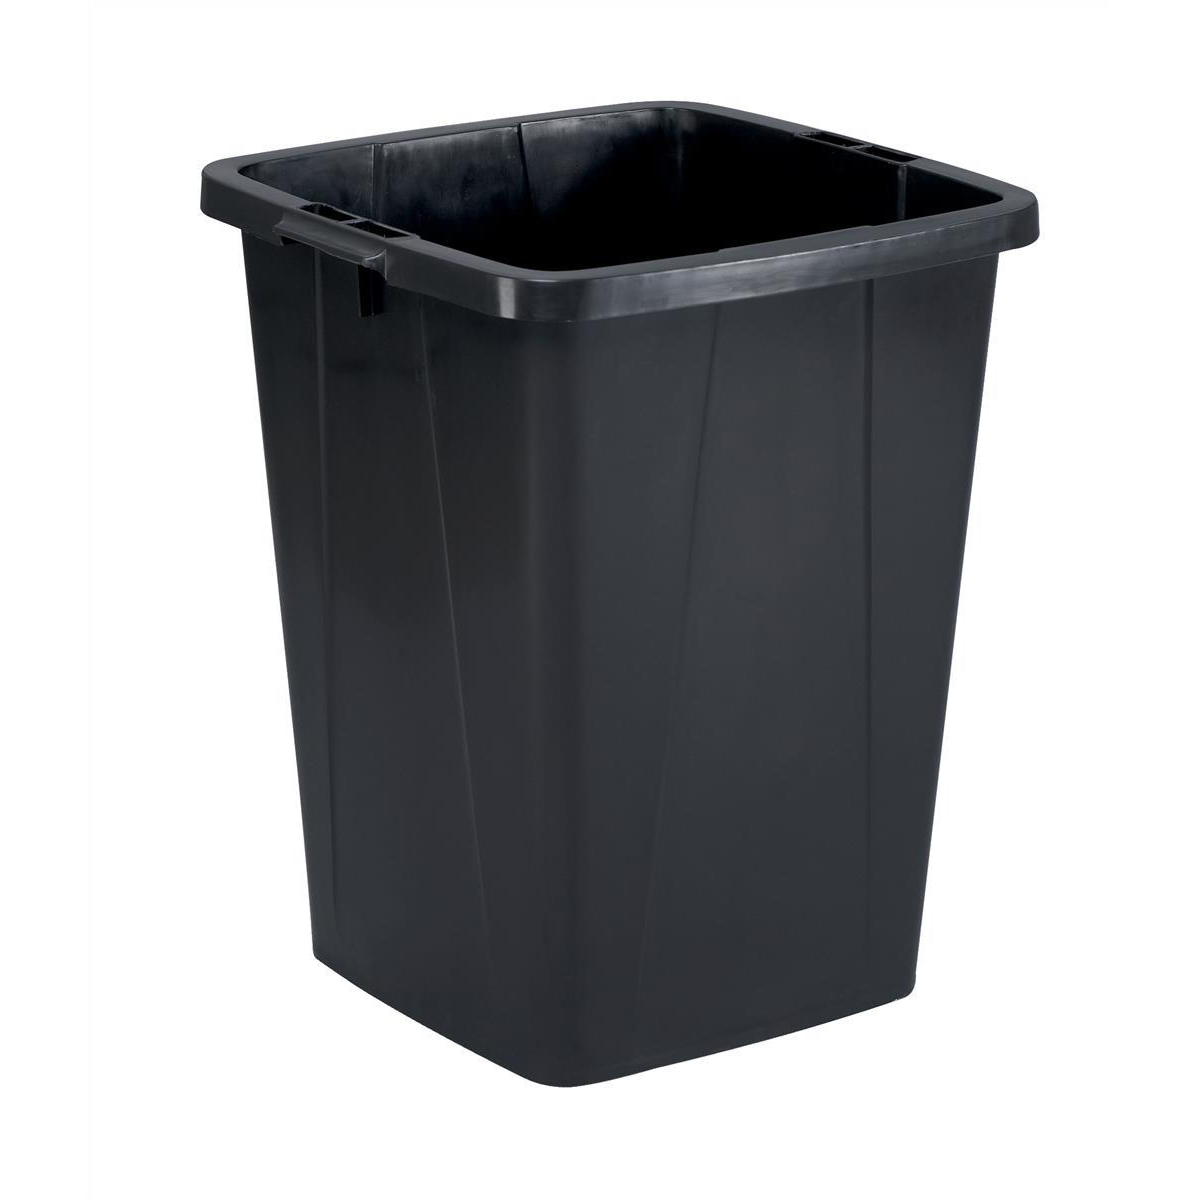 Rubbish Bins Durable Durabin Slim Bin for Recycling Waste 90 Litre Capacity 515x485x605mm Black Ref 1800474221